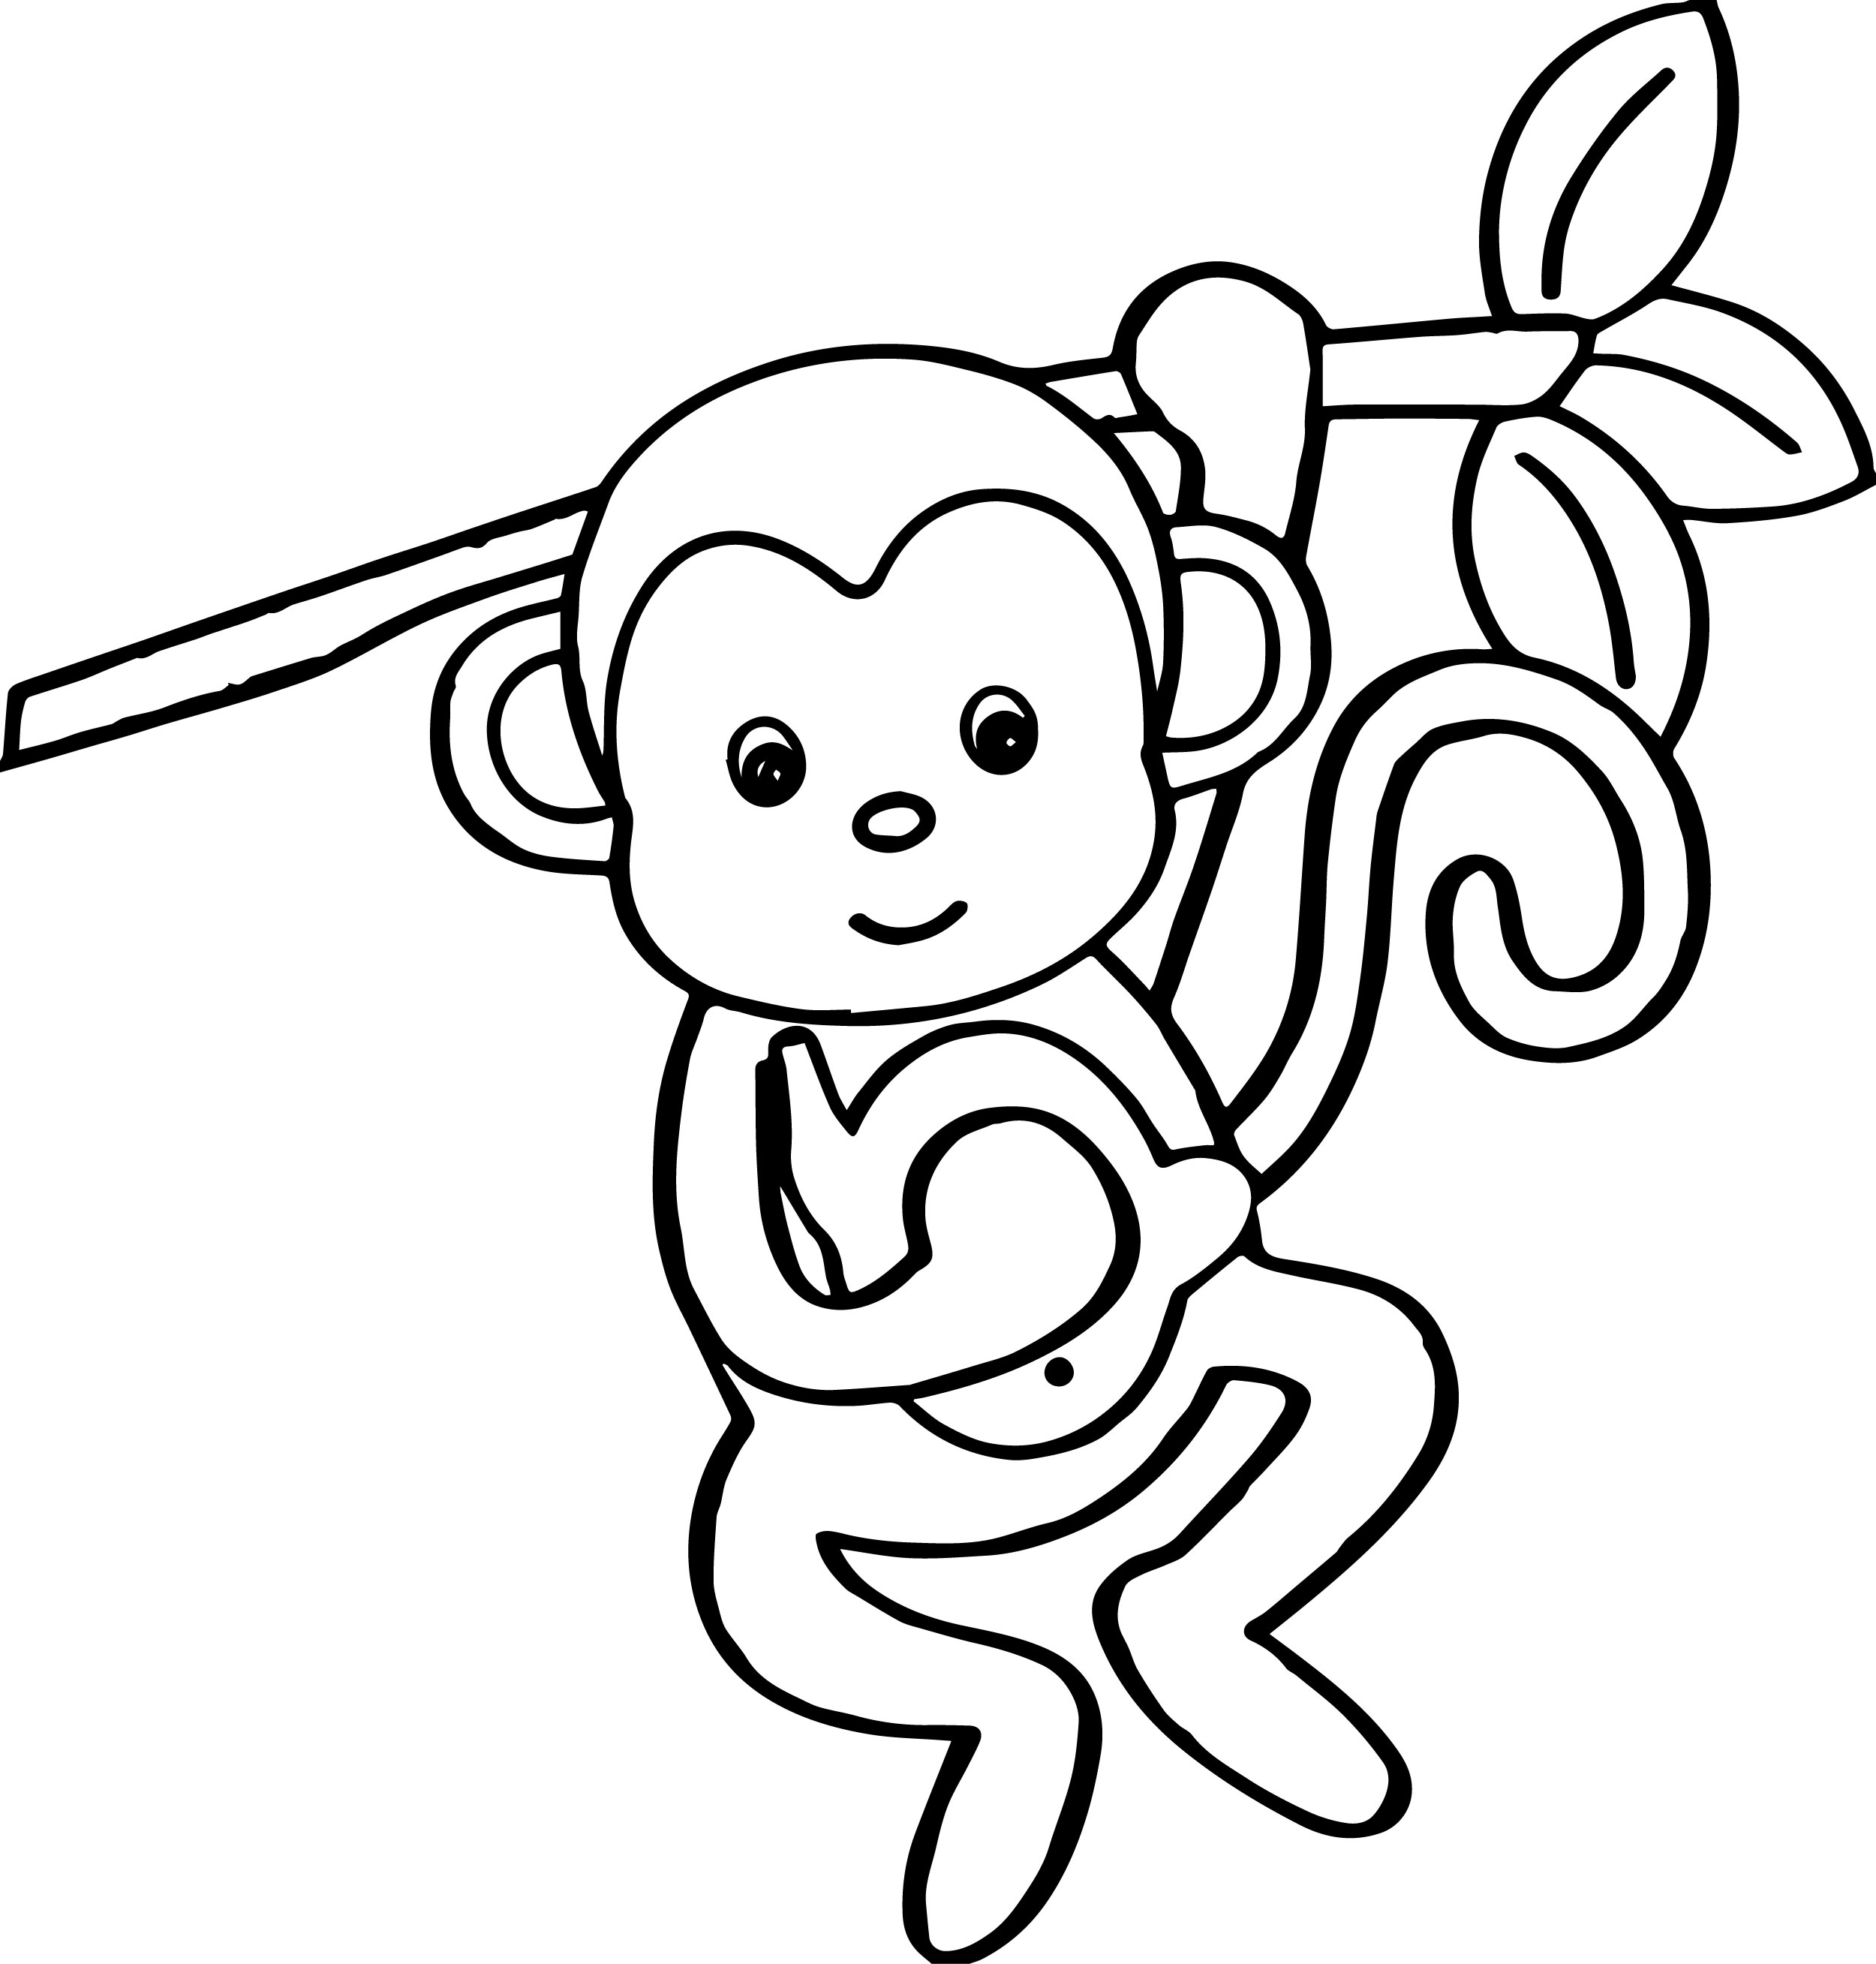 271bfb92b1ada9d95a77b9ab659184e3 furthermore Imagens de macacos e gorilas para imprimir e colorir 11 as well how to draw a baby monkey step 5 also  additionally 76 Free Cute Cartoon Monkey Clipart Illustration together with Blog Paper Toy papertoy Spider Man Template moreover  together with  likewise  moreover  also . on monky baby disney coloring pages